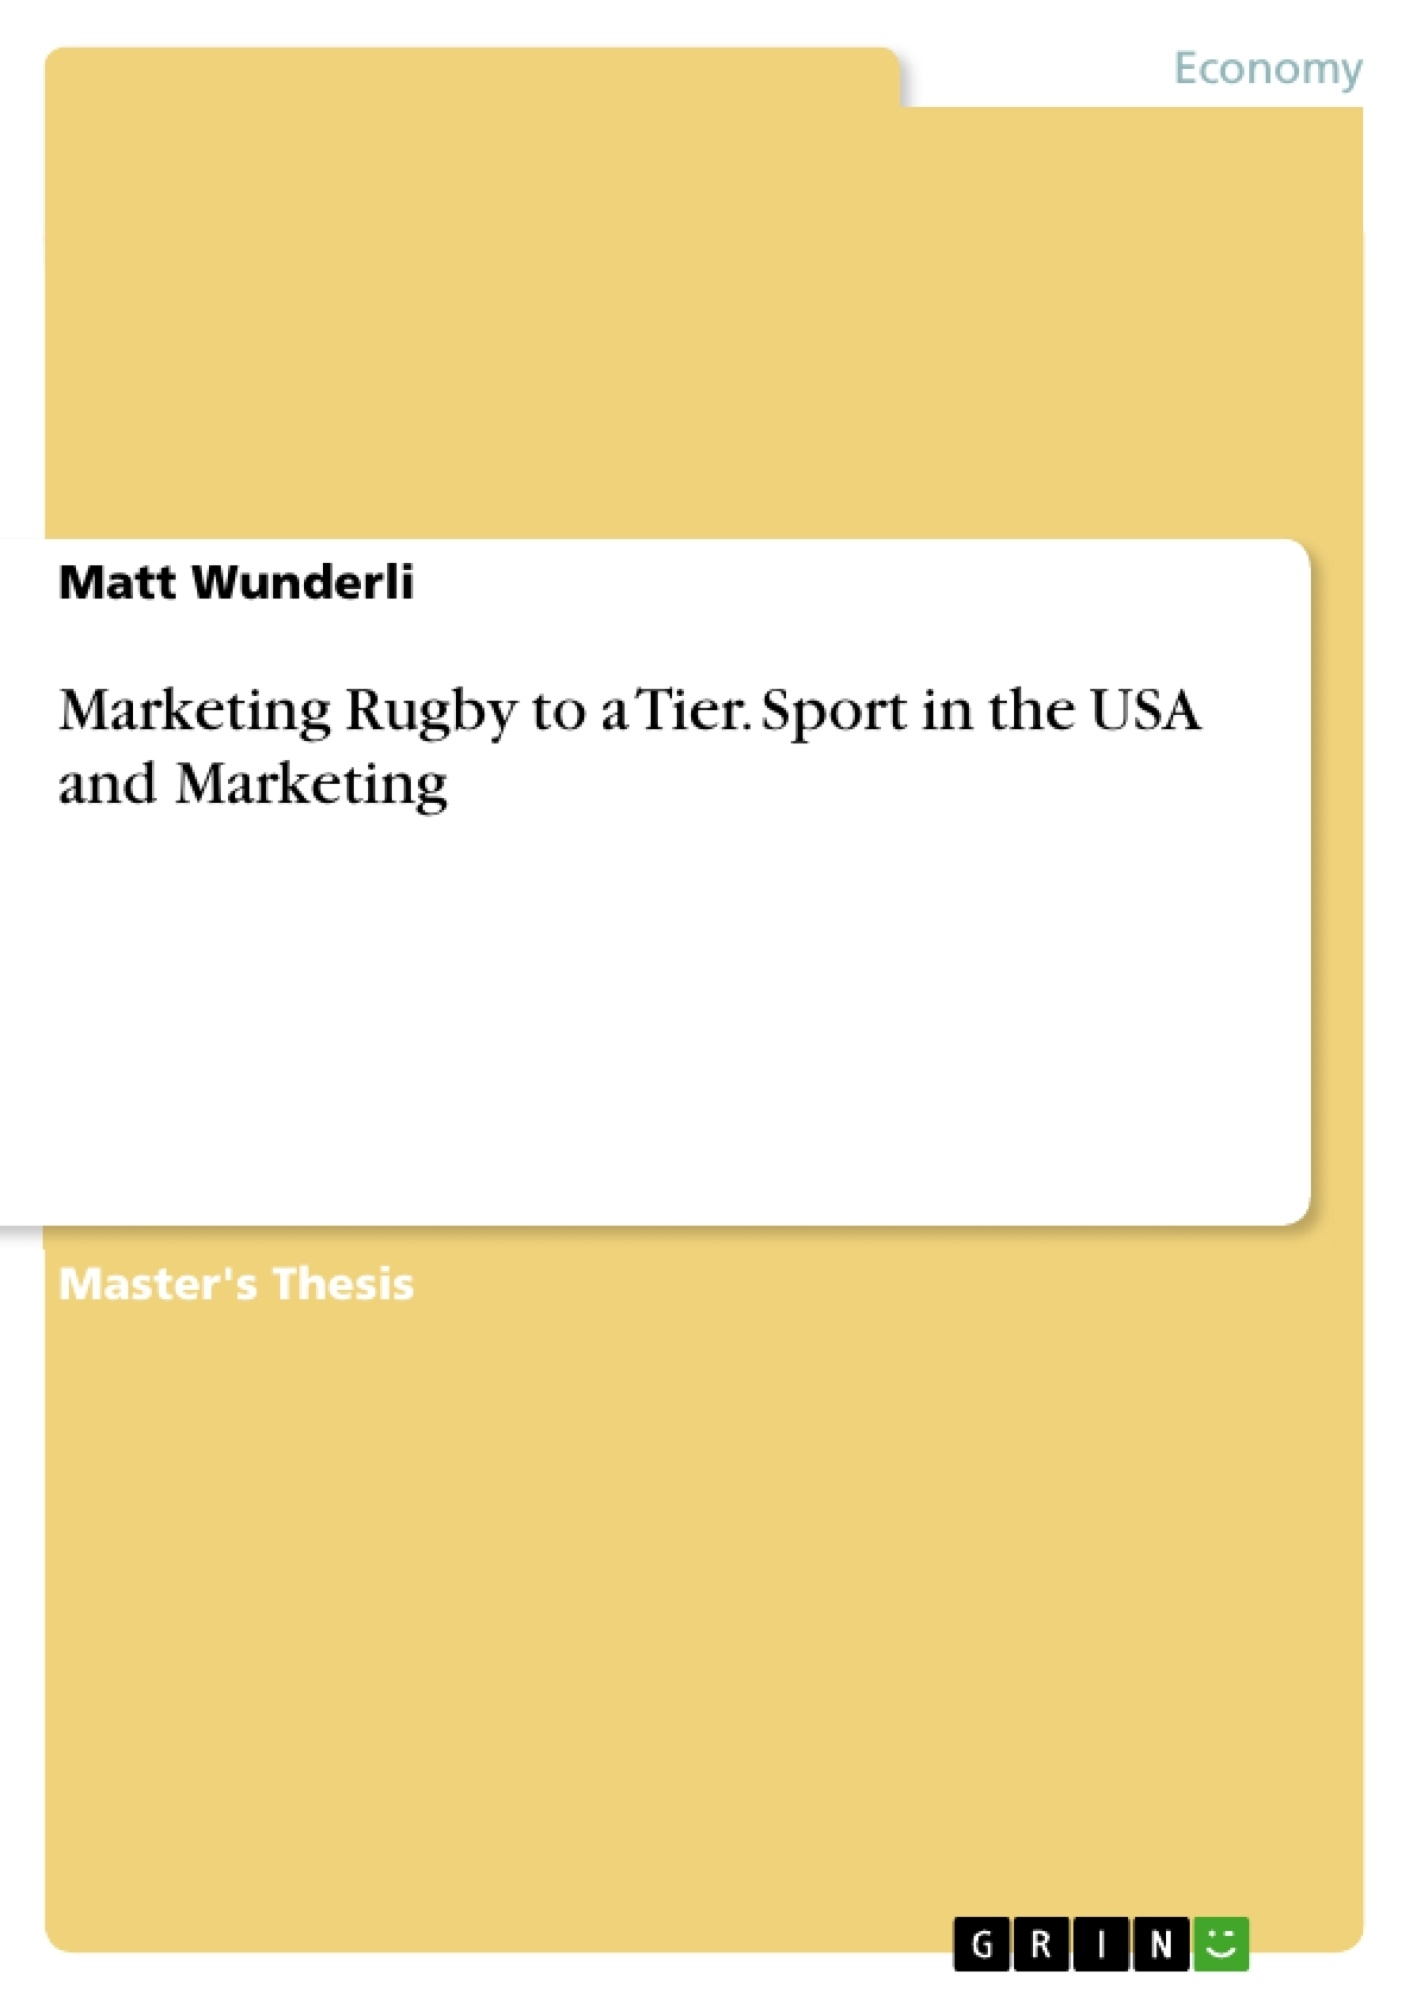 Title: Marketing Rugby to a Tier. Sport in the USA and Marketing